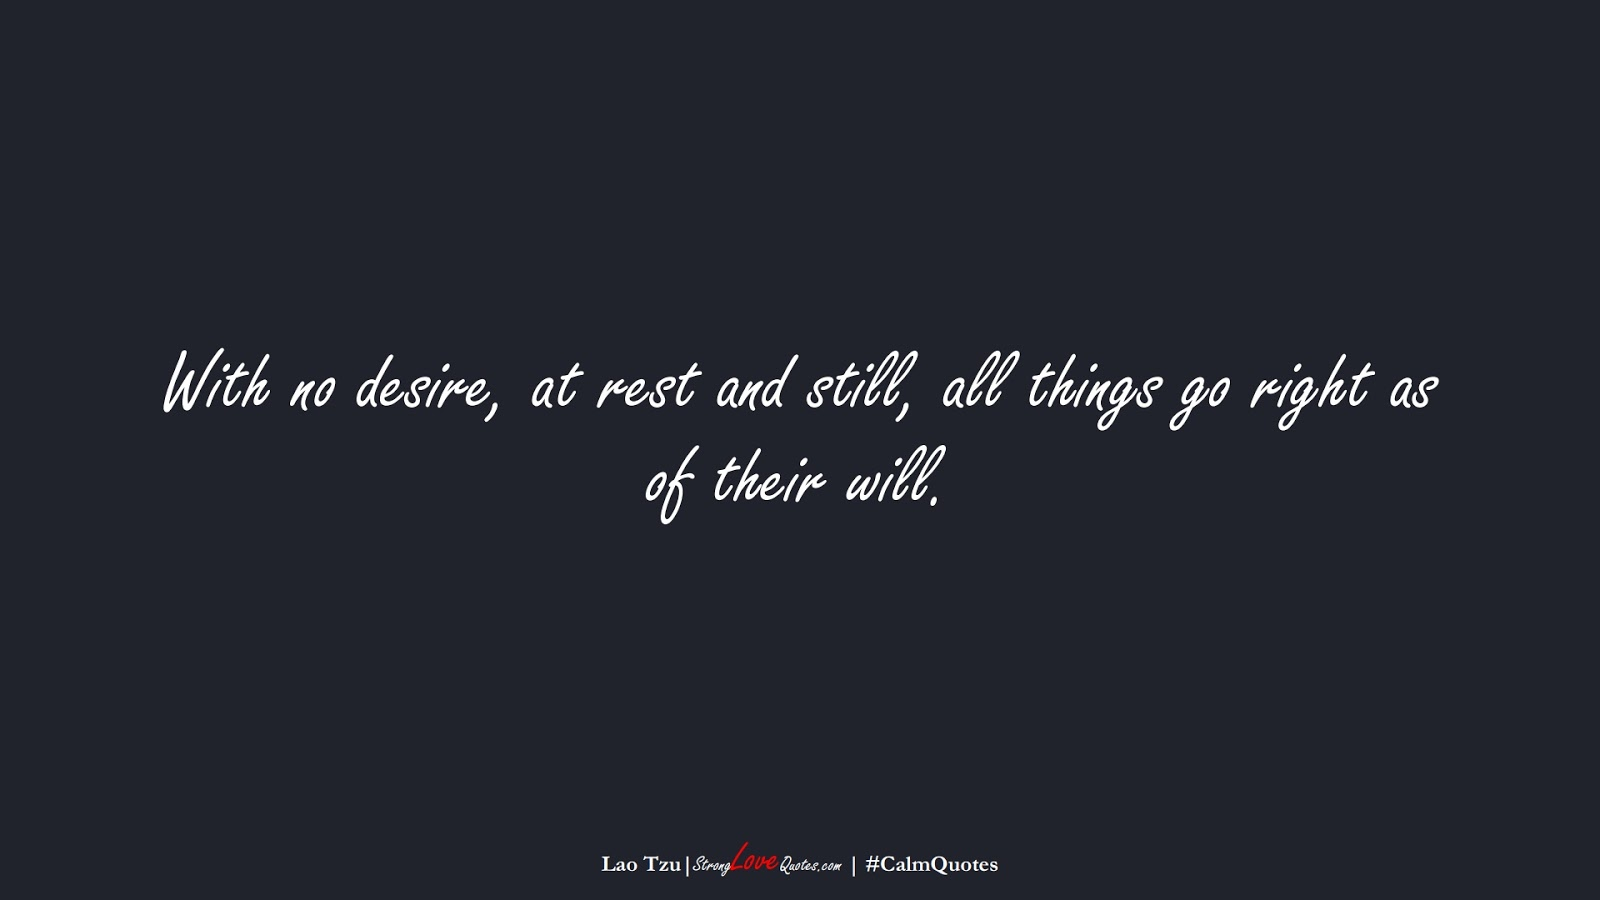 With no desire, at rest and still, all things go right as of their will. (Lao Tzu);  #CalmQuotes